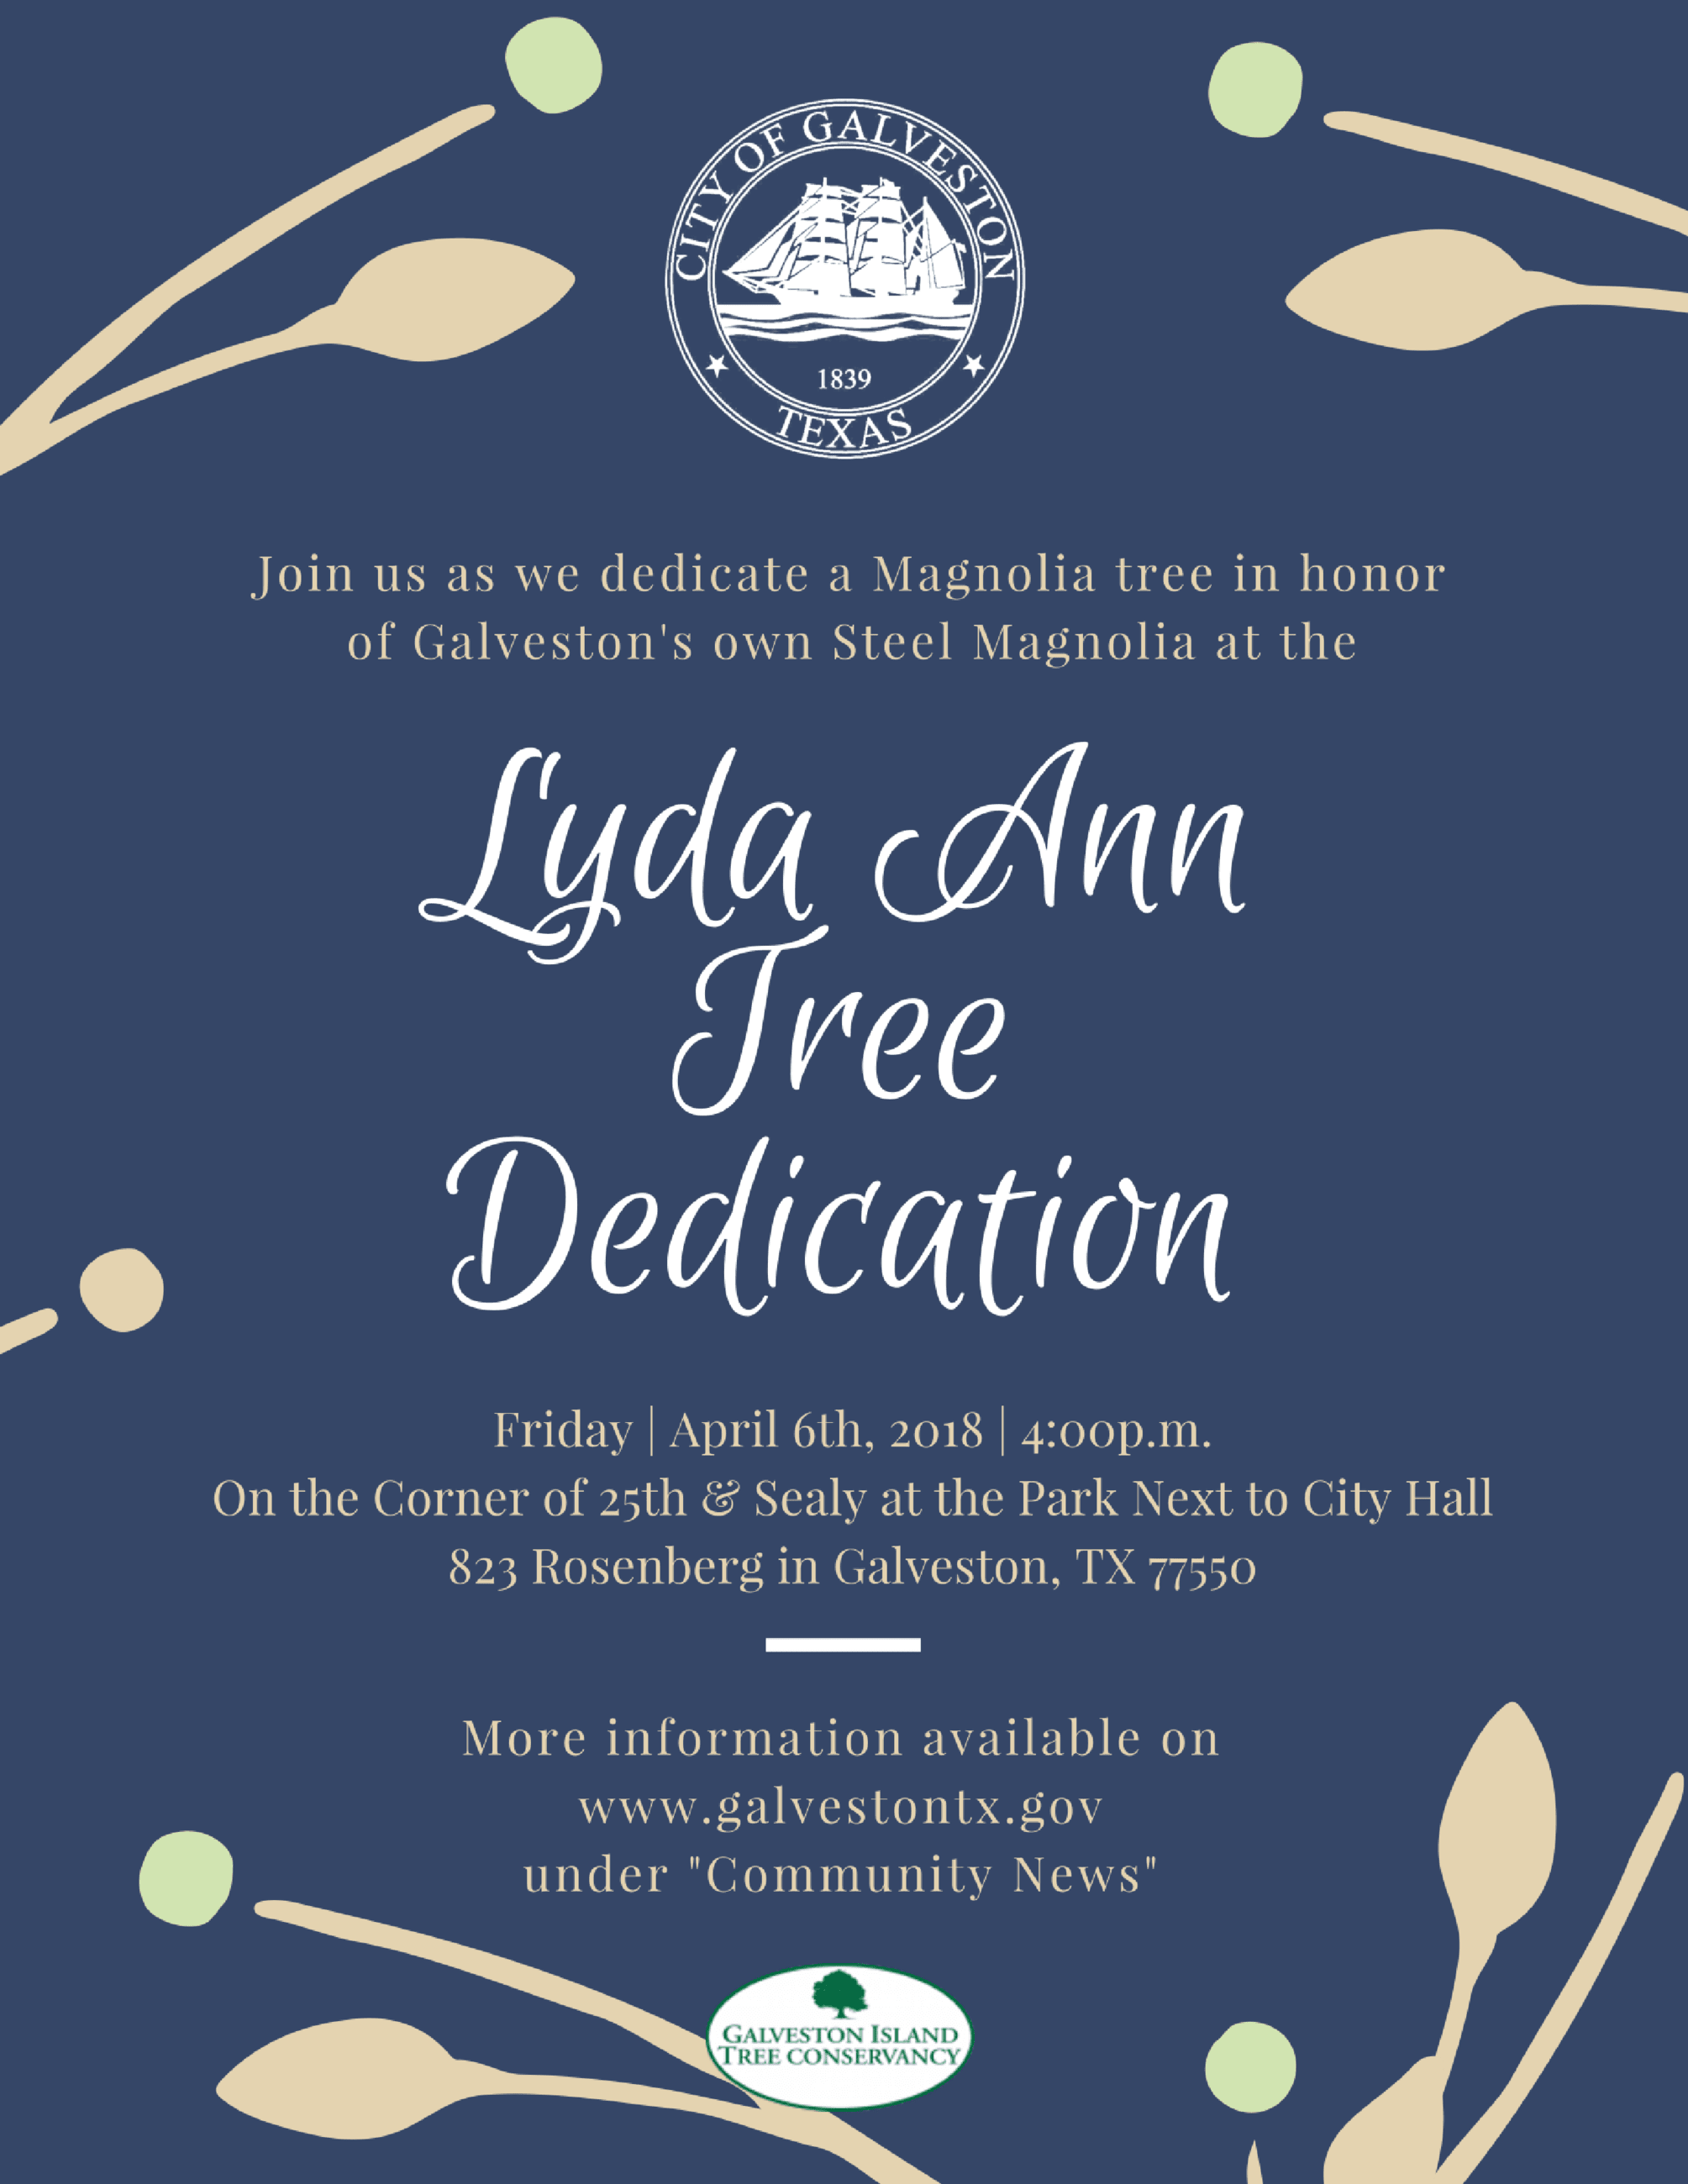 lyda ann tree dedication invite